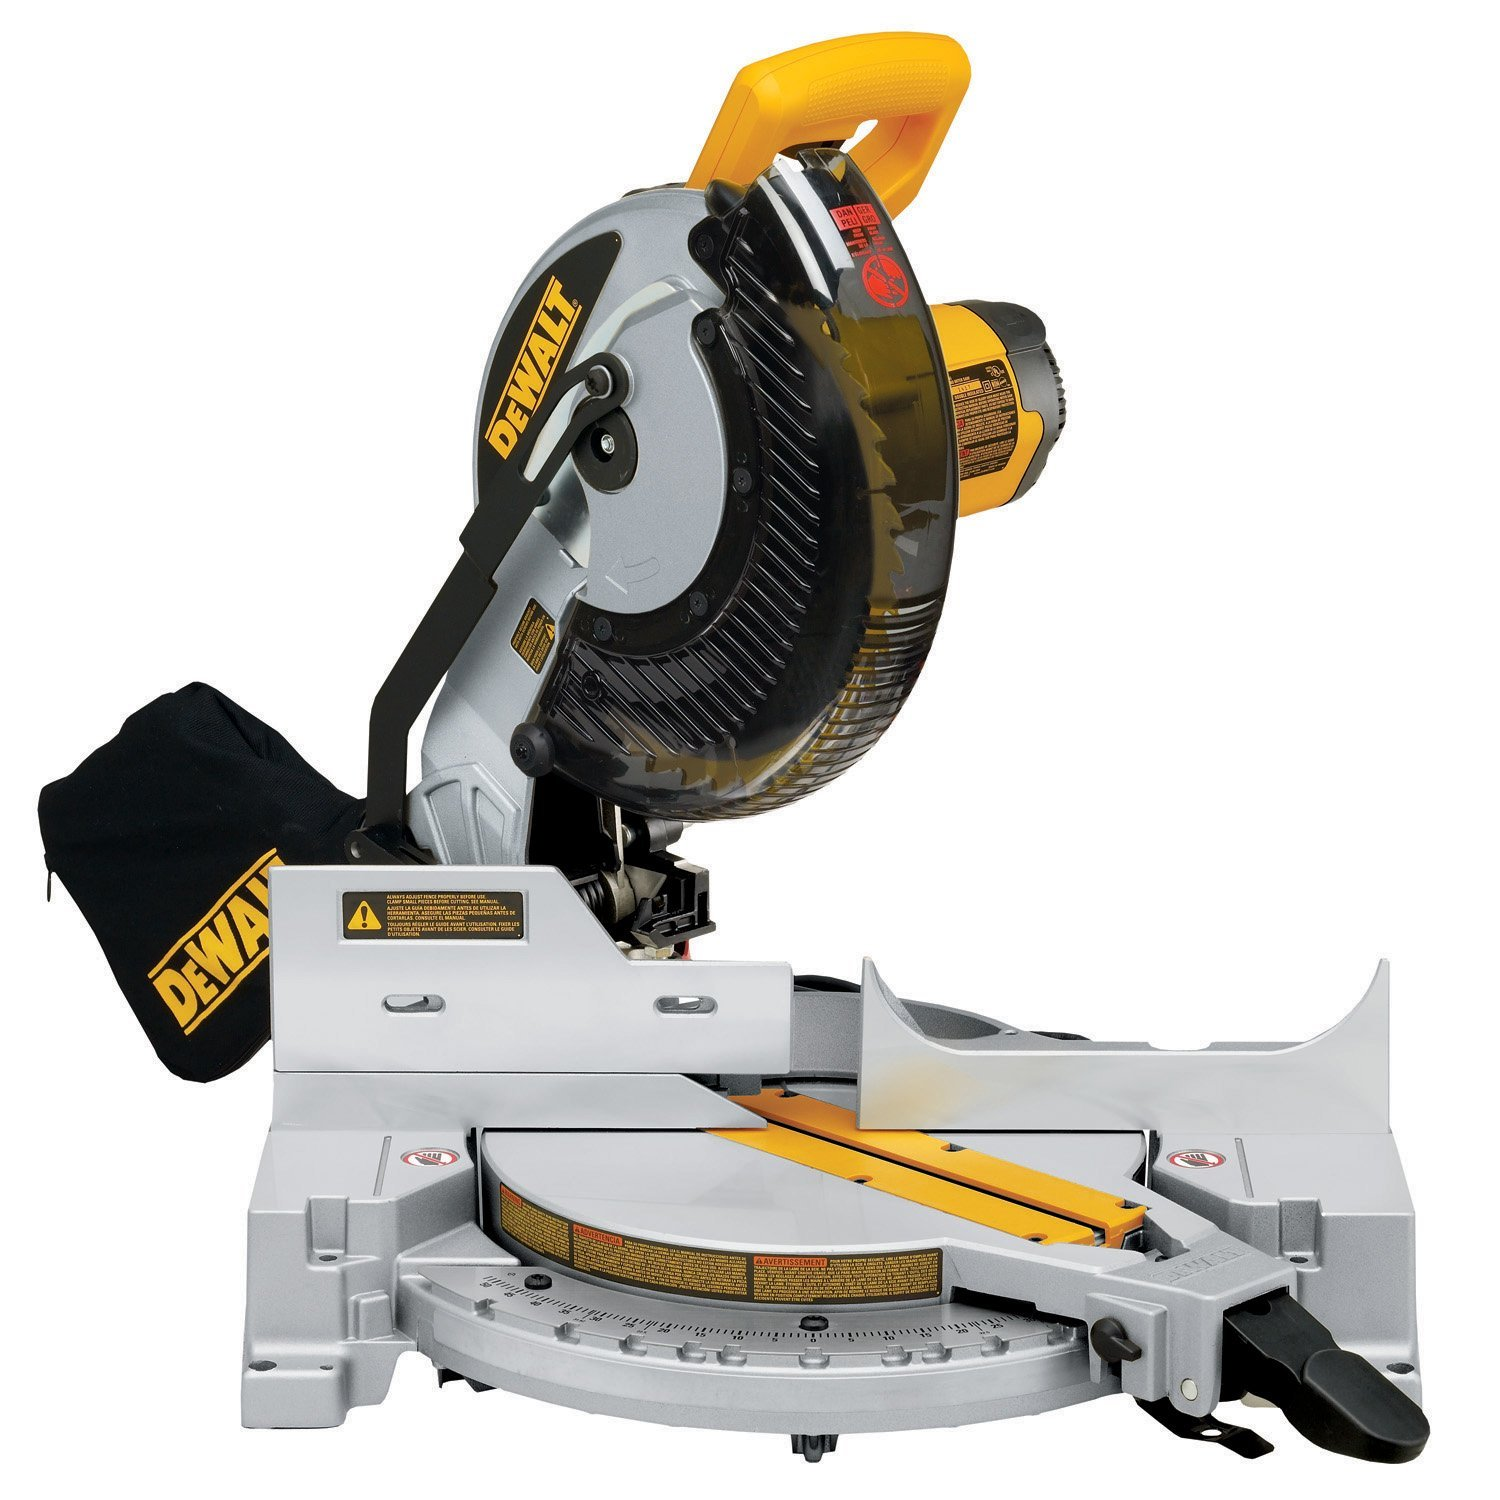 Best Miter Saws of 2019 - Top 10 Miter Saws Revealed